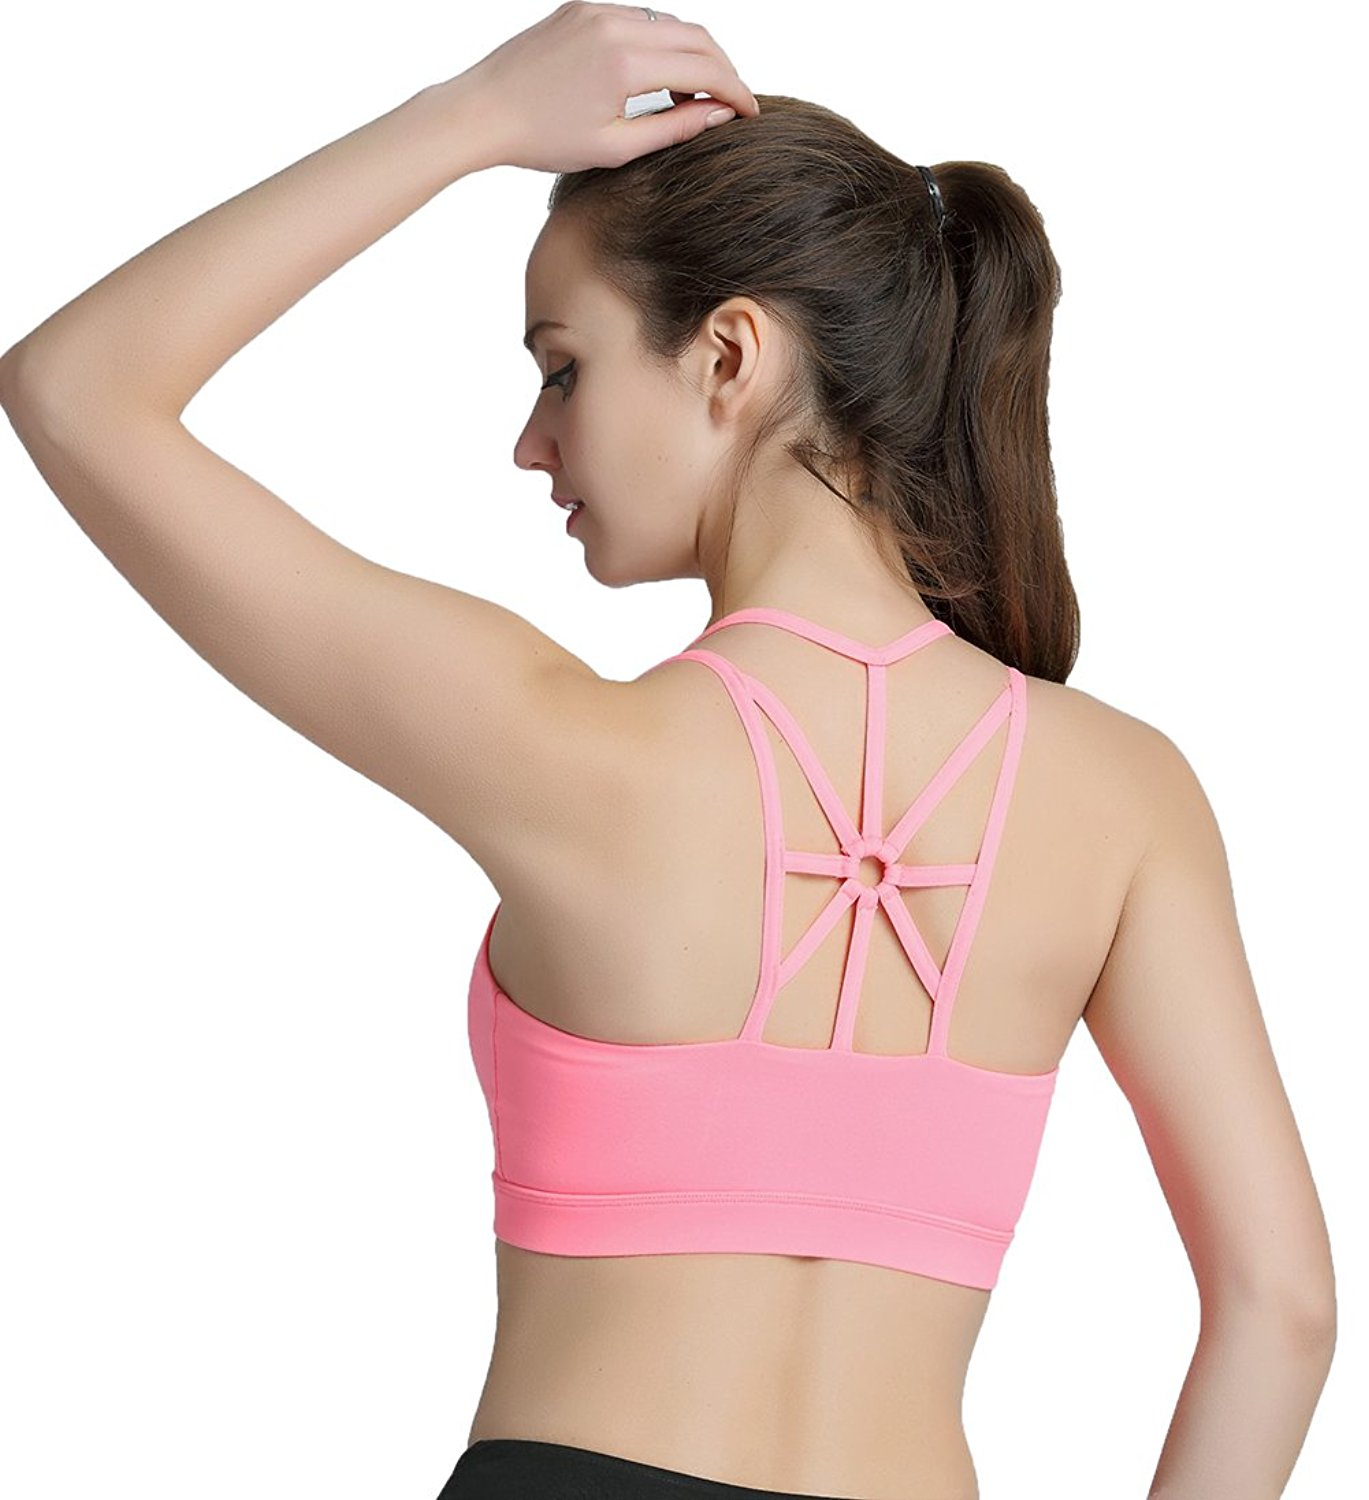 b7106c7a13886 Get Quotations · Hioffer Womens Light Support Cross Back Wirefree Pad Yoga Sports  Bra Double Lined T-Back